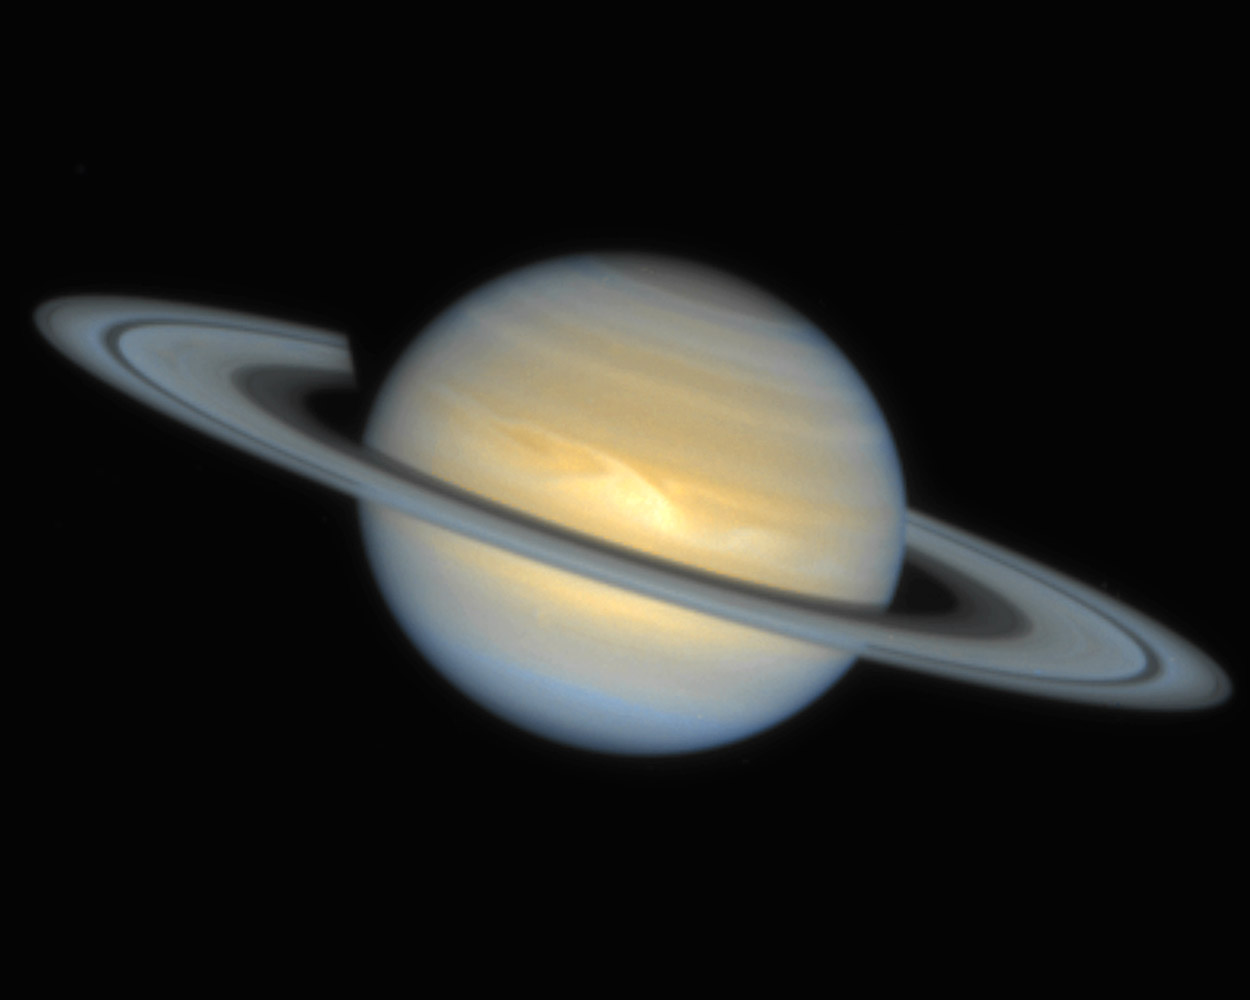 planet saturn poster - photo #28